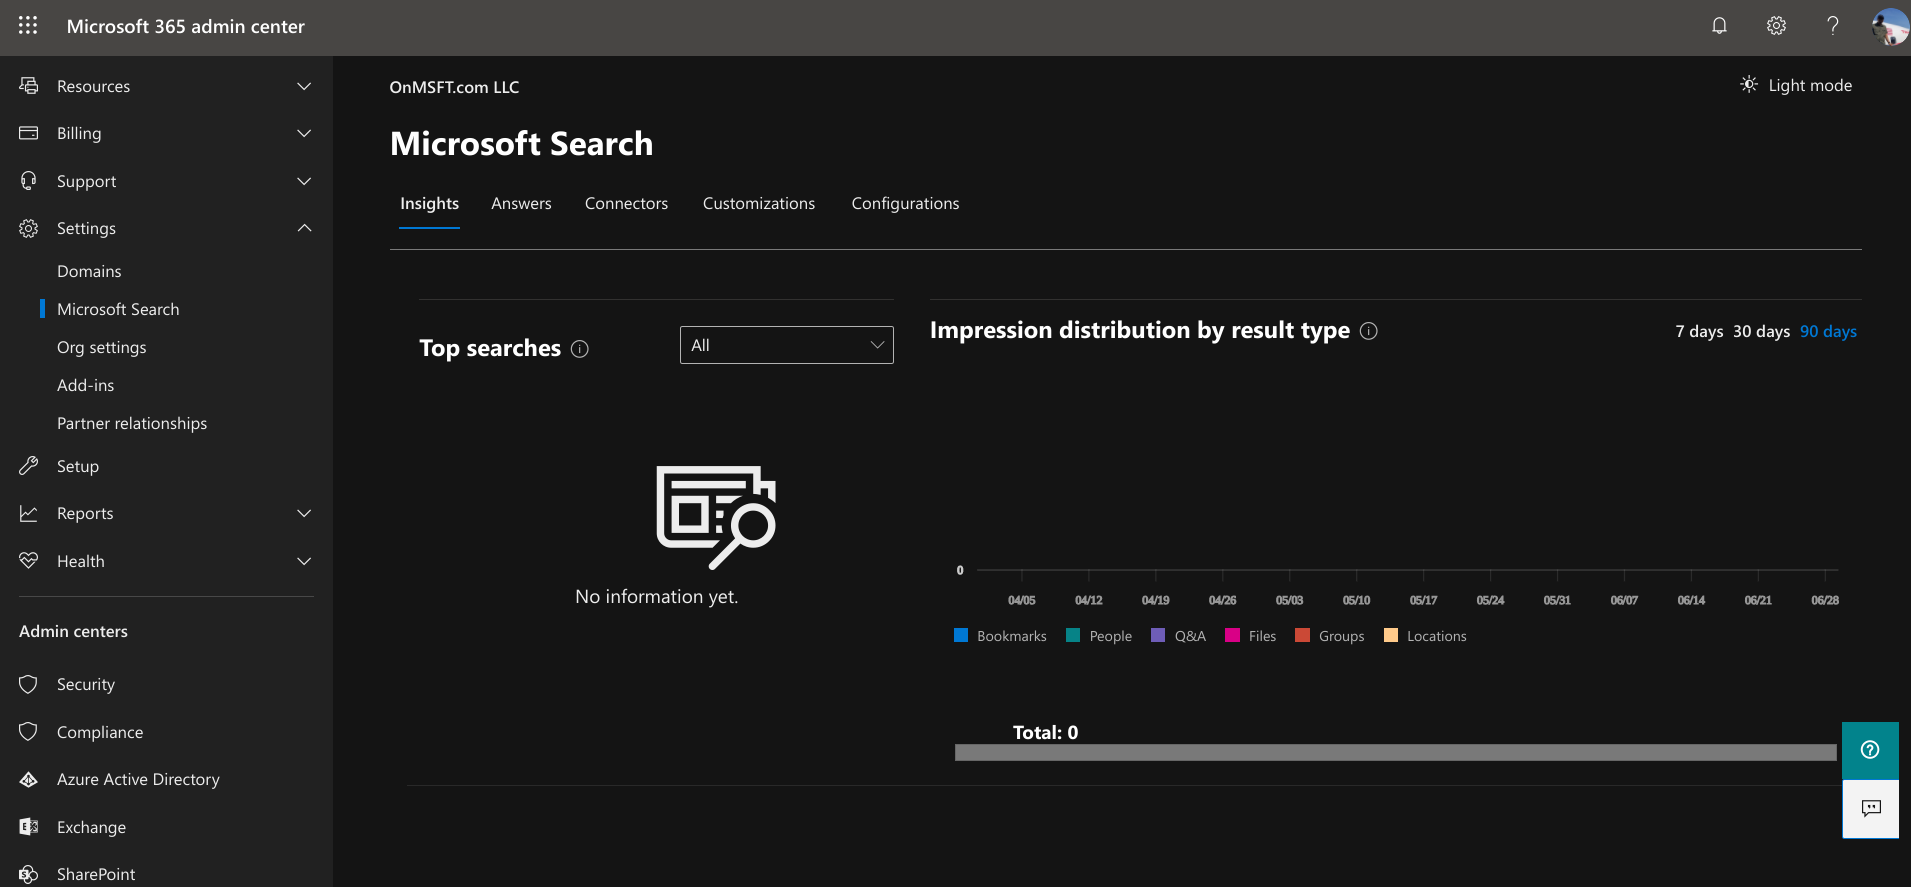 Top three tips and tricks for getting the most out of microsoft search - onmsft. Com - june 30, 2020